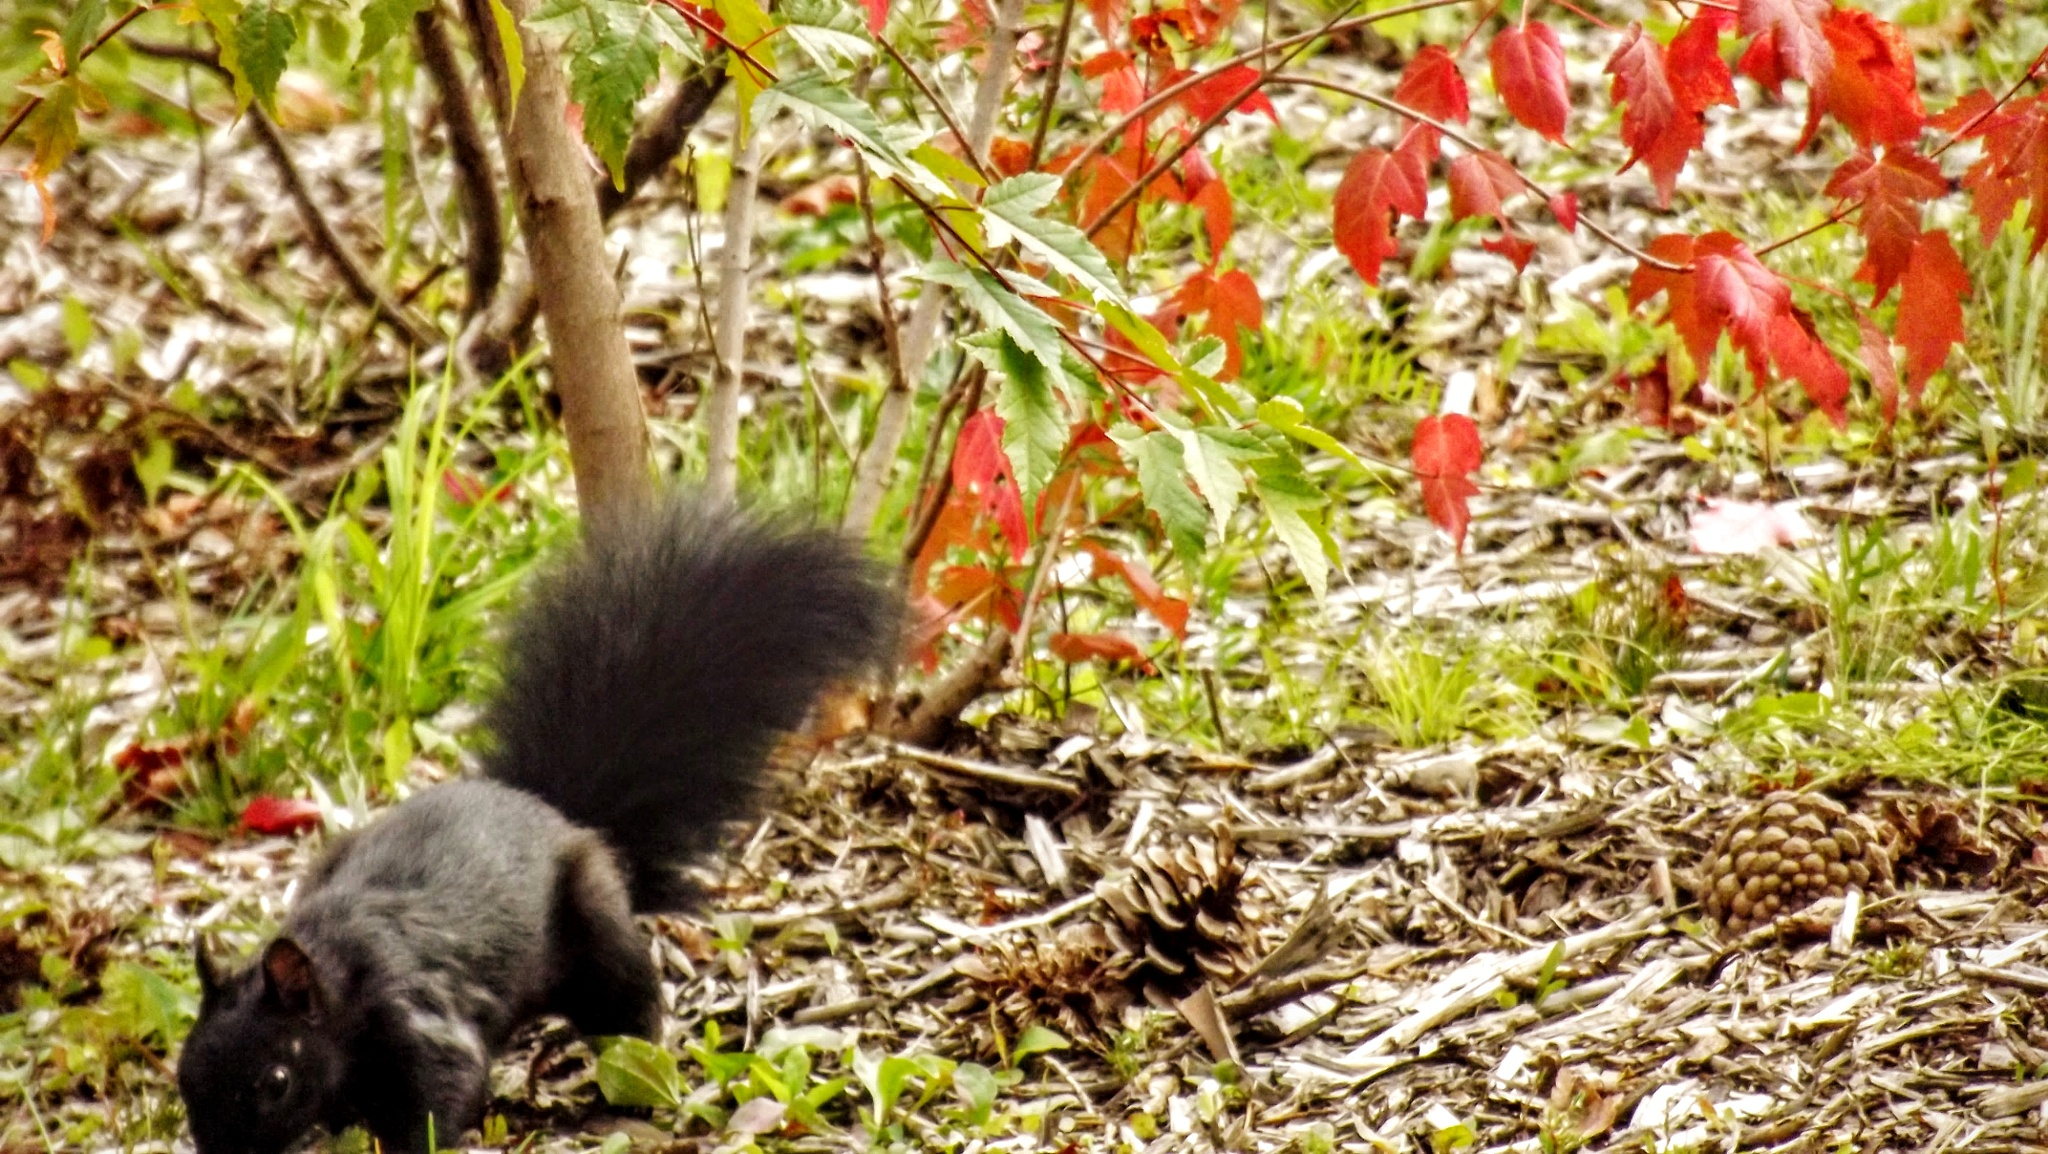 Squirrel autumn time by real.michaud.5036